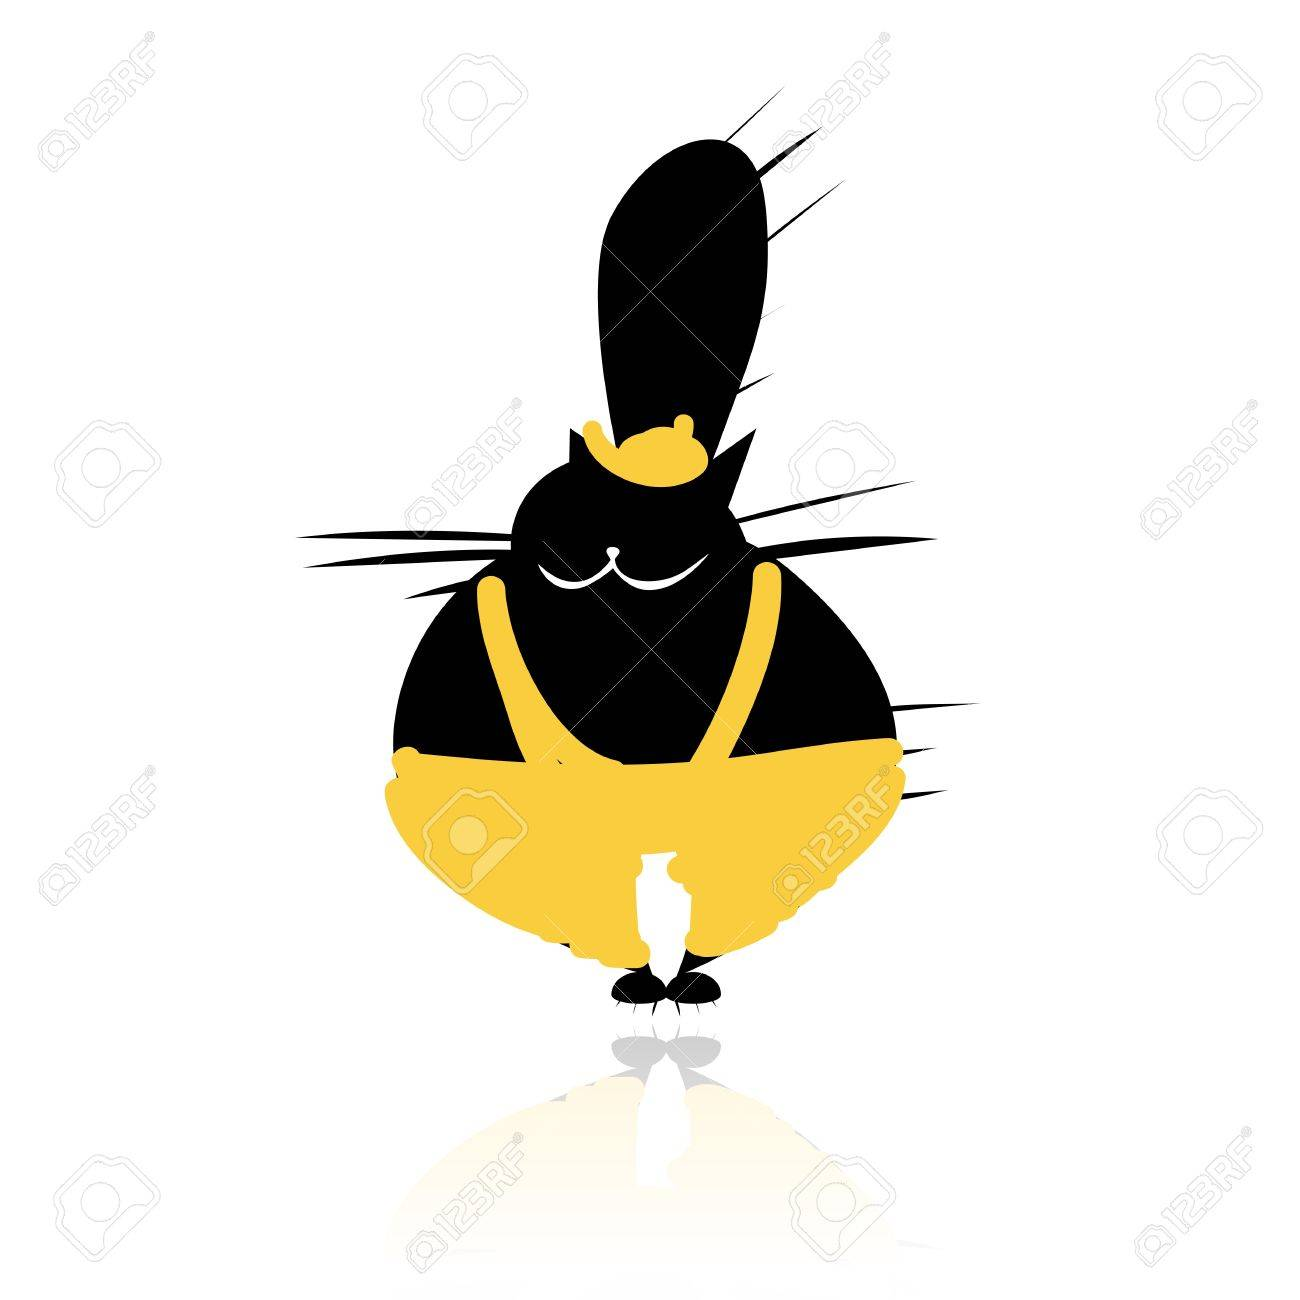 Funny black cat in fashion clothes for your design Stock Vector - 14946643